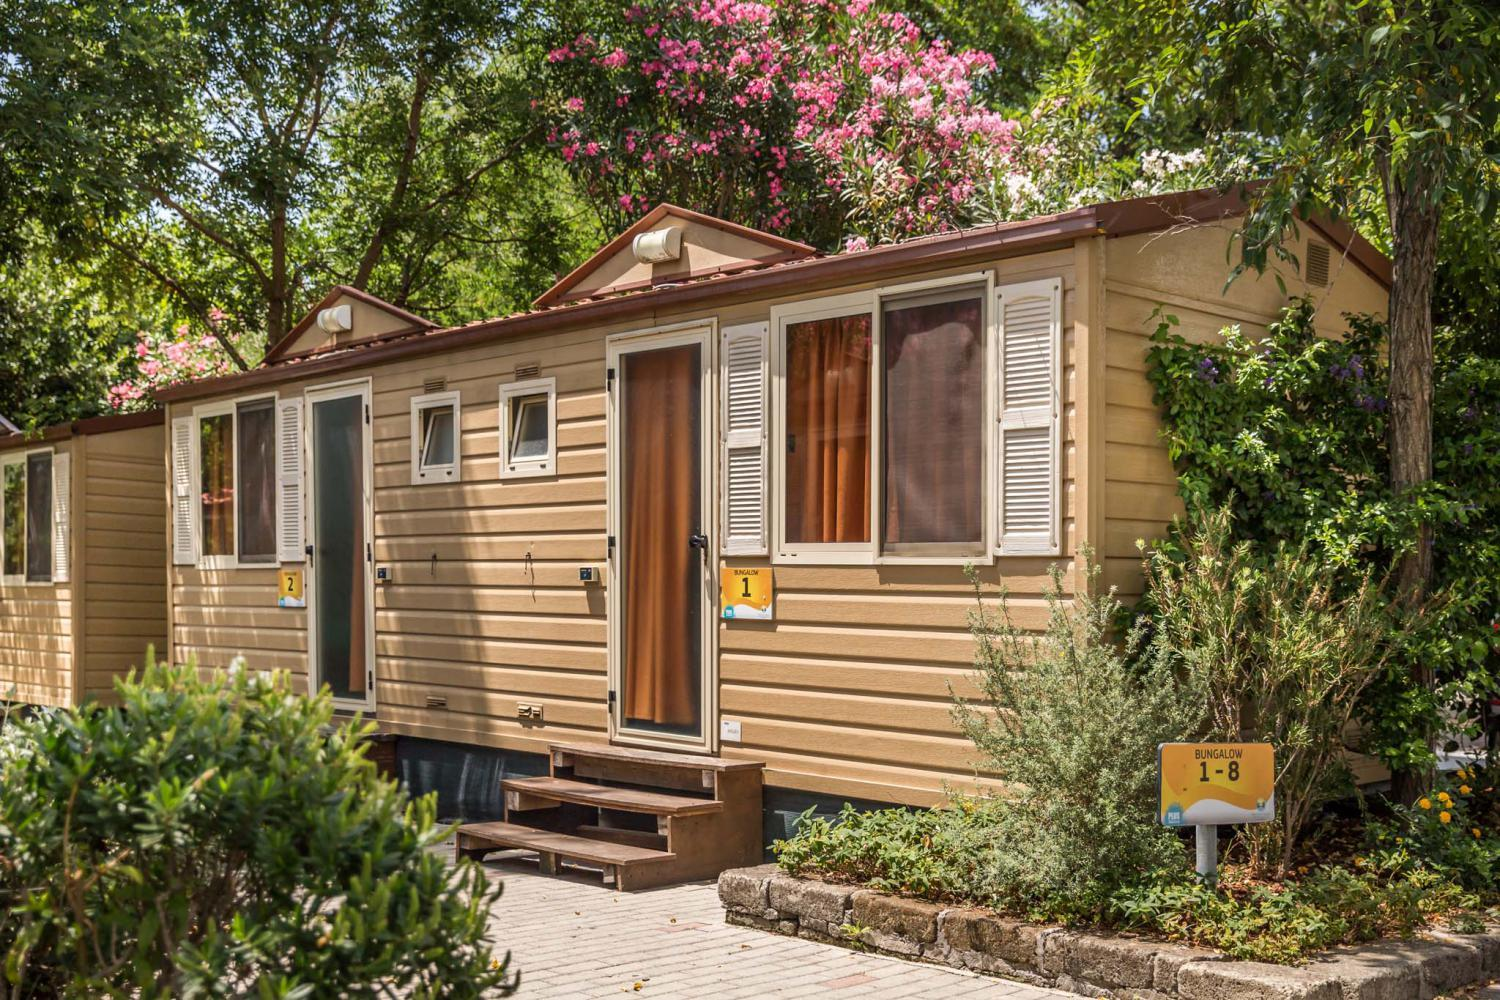 Accommodation - Bungalow Standard - Roma Camping in Town